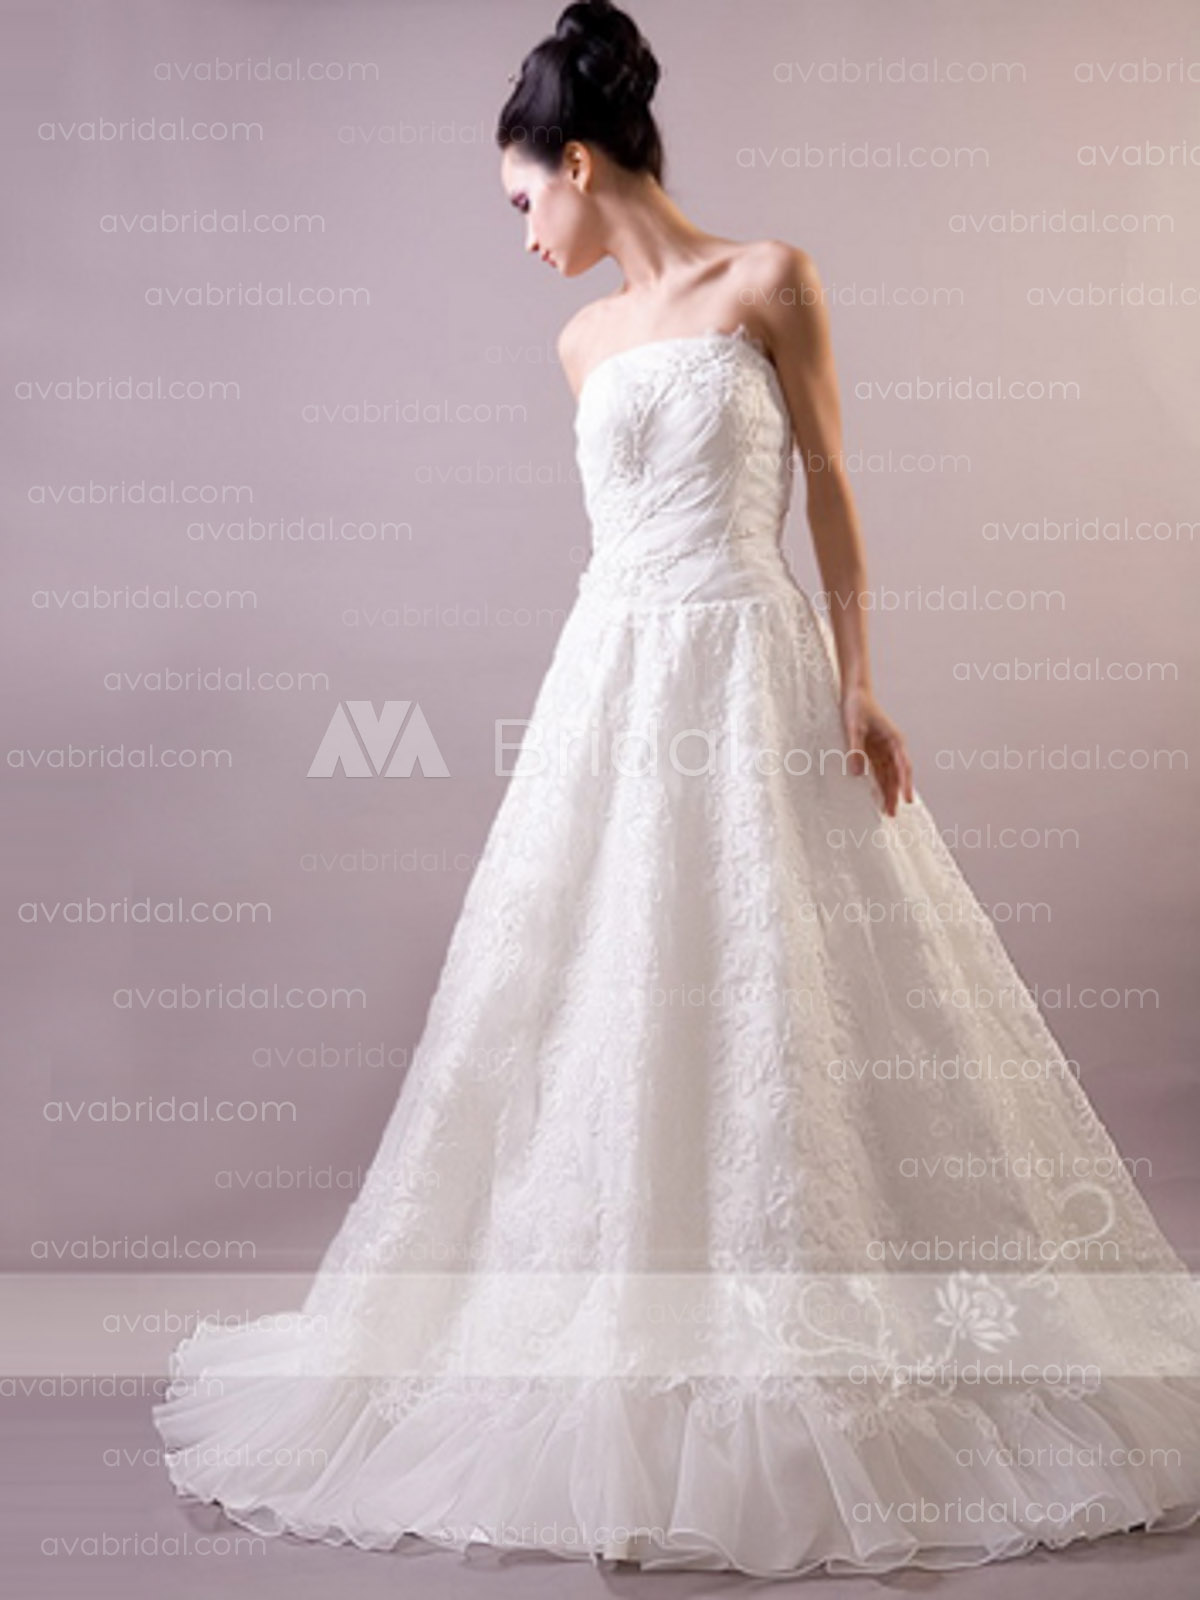 Lace Wedding Gown - Inis - Front